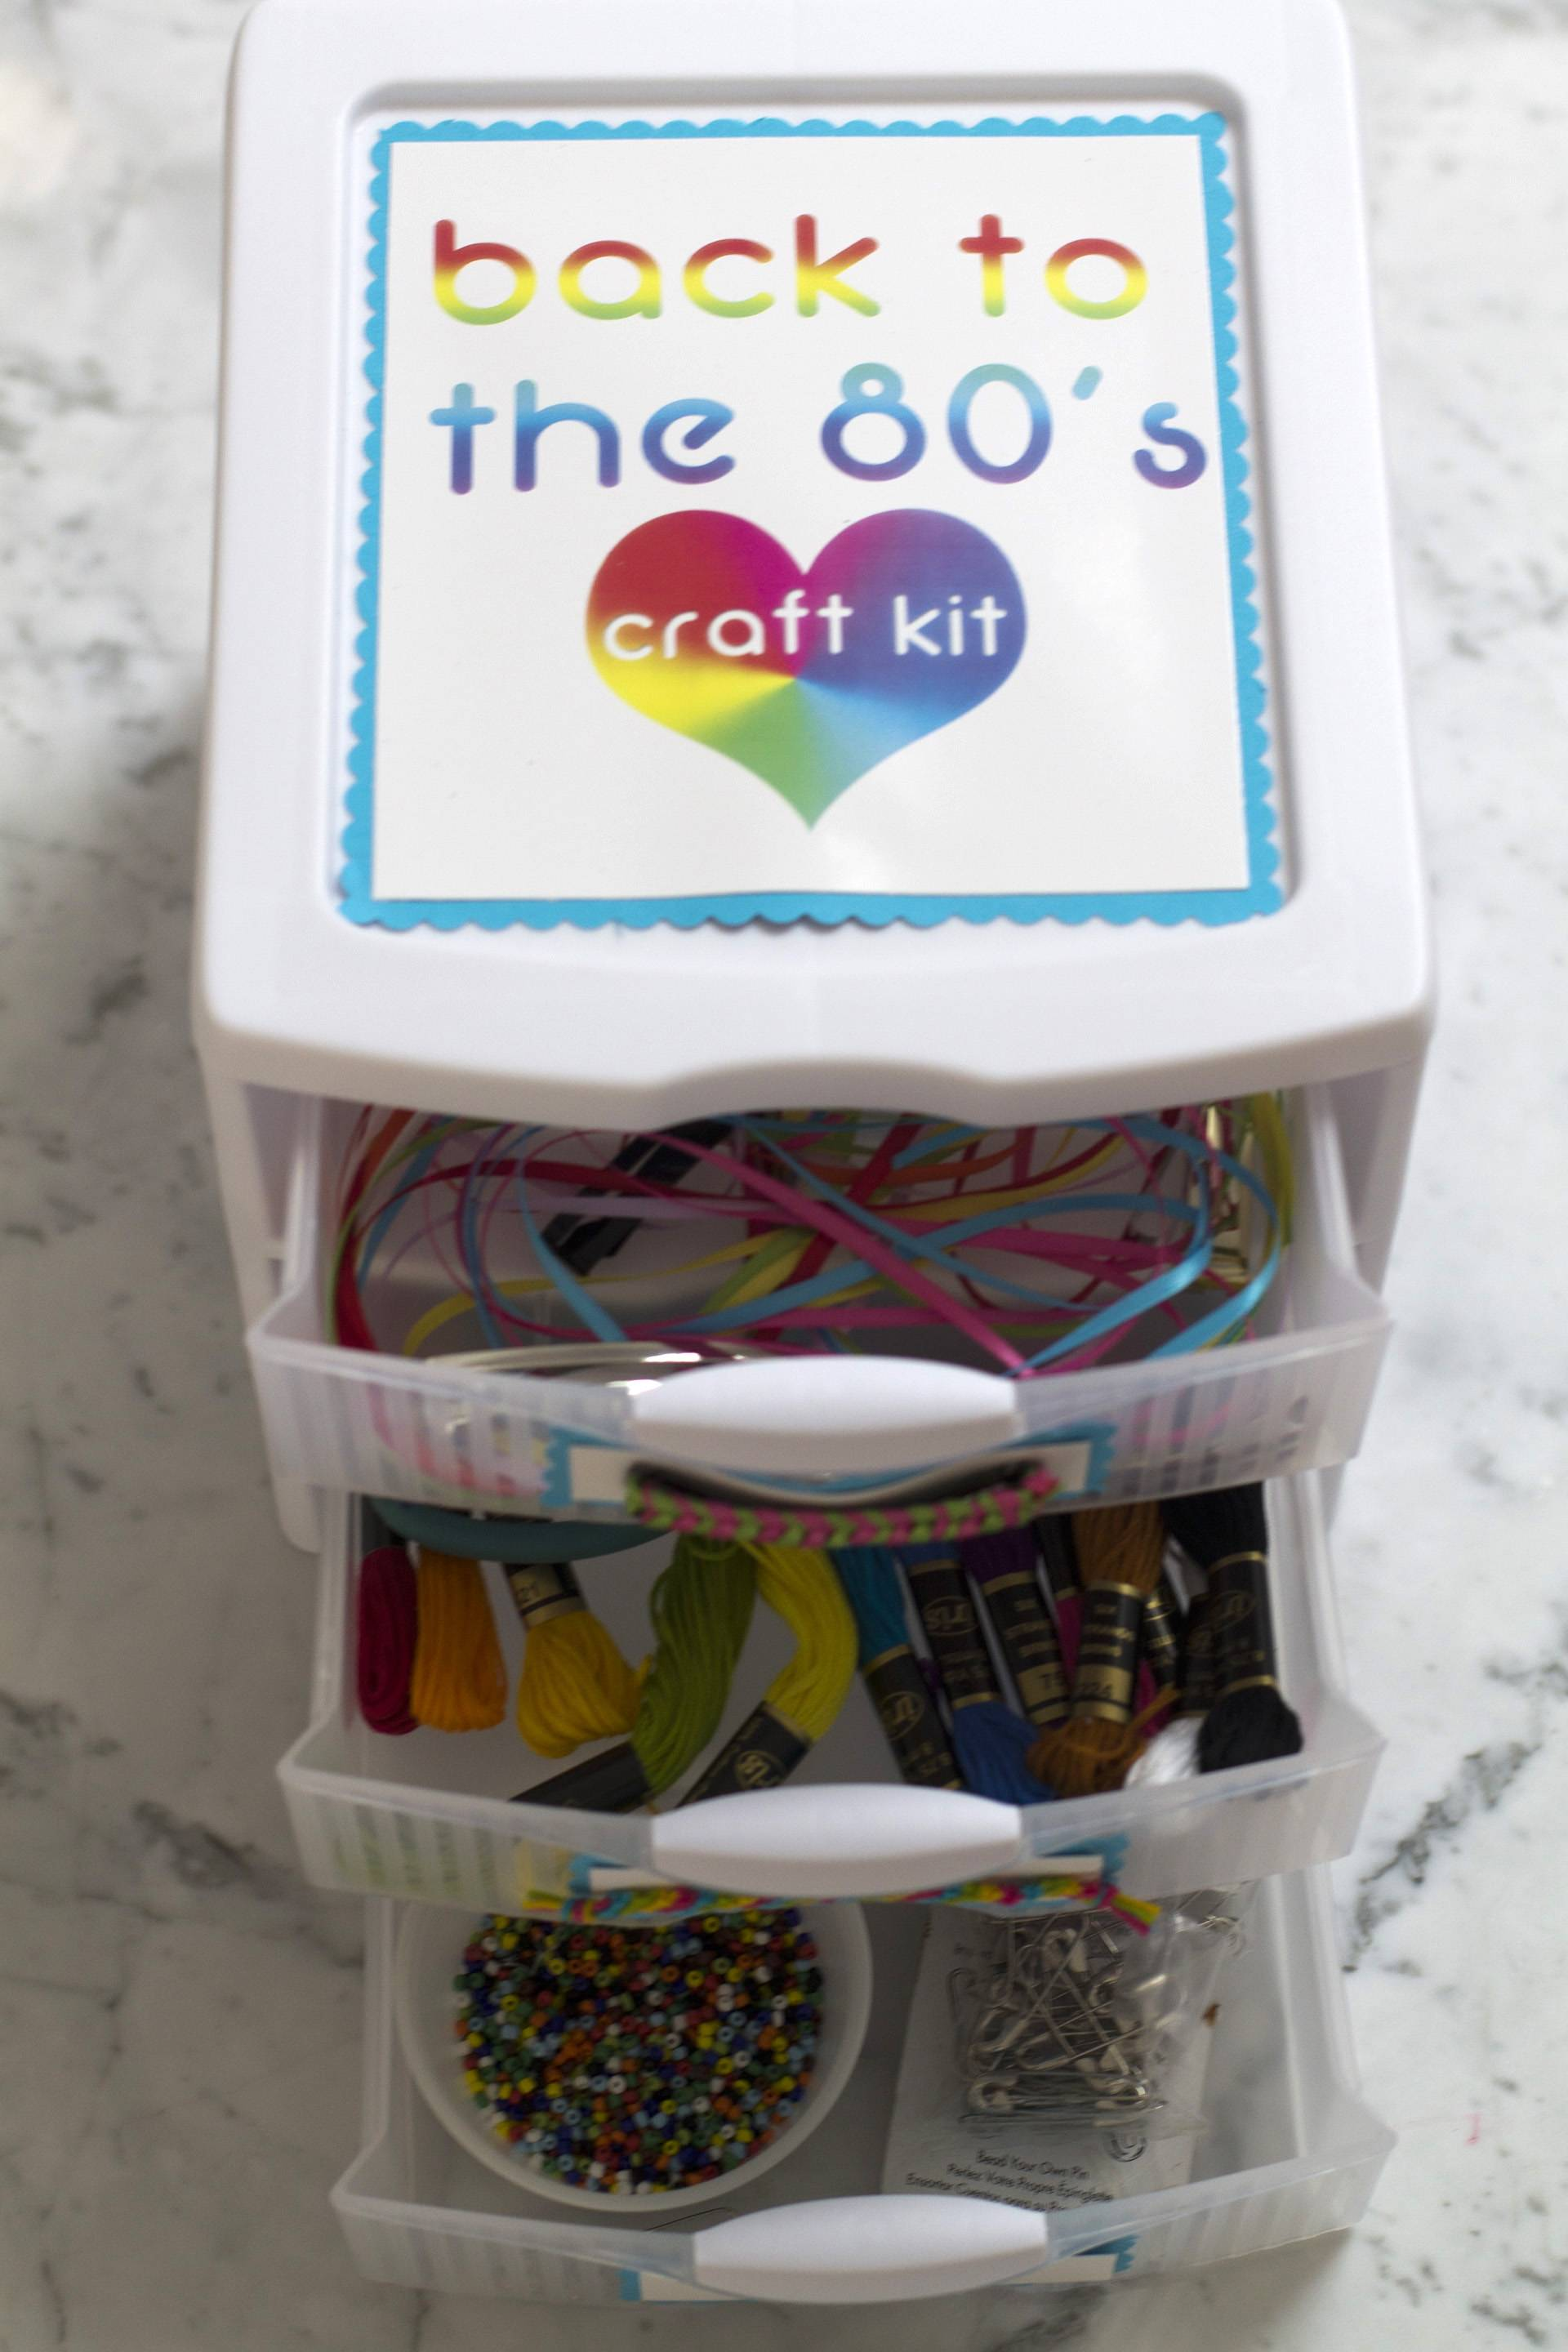 Here's a fun gift: a homemade kit filled with supplies to make girlie accessories from the 1980s: ribbon barrettes, friendship bracelets and friendship pins.